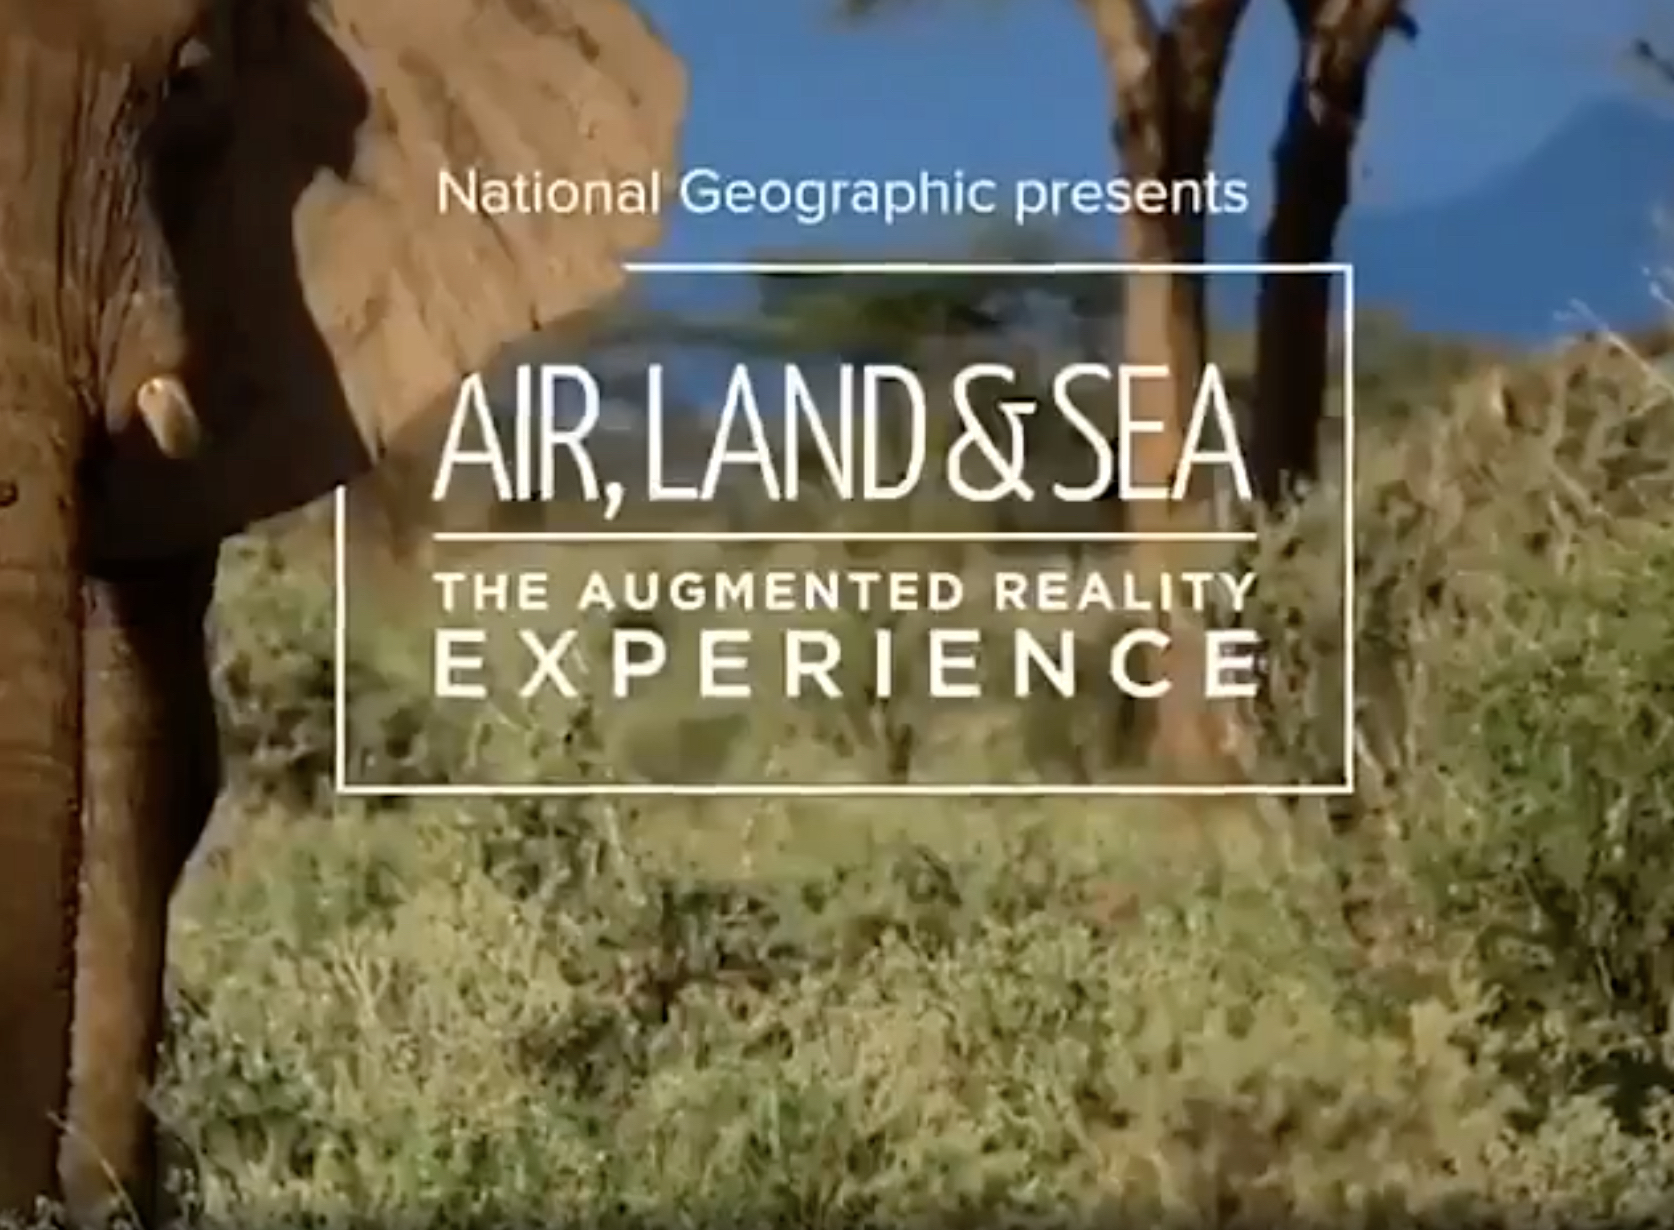 Augmented reality @National Geographic